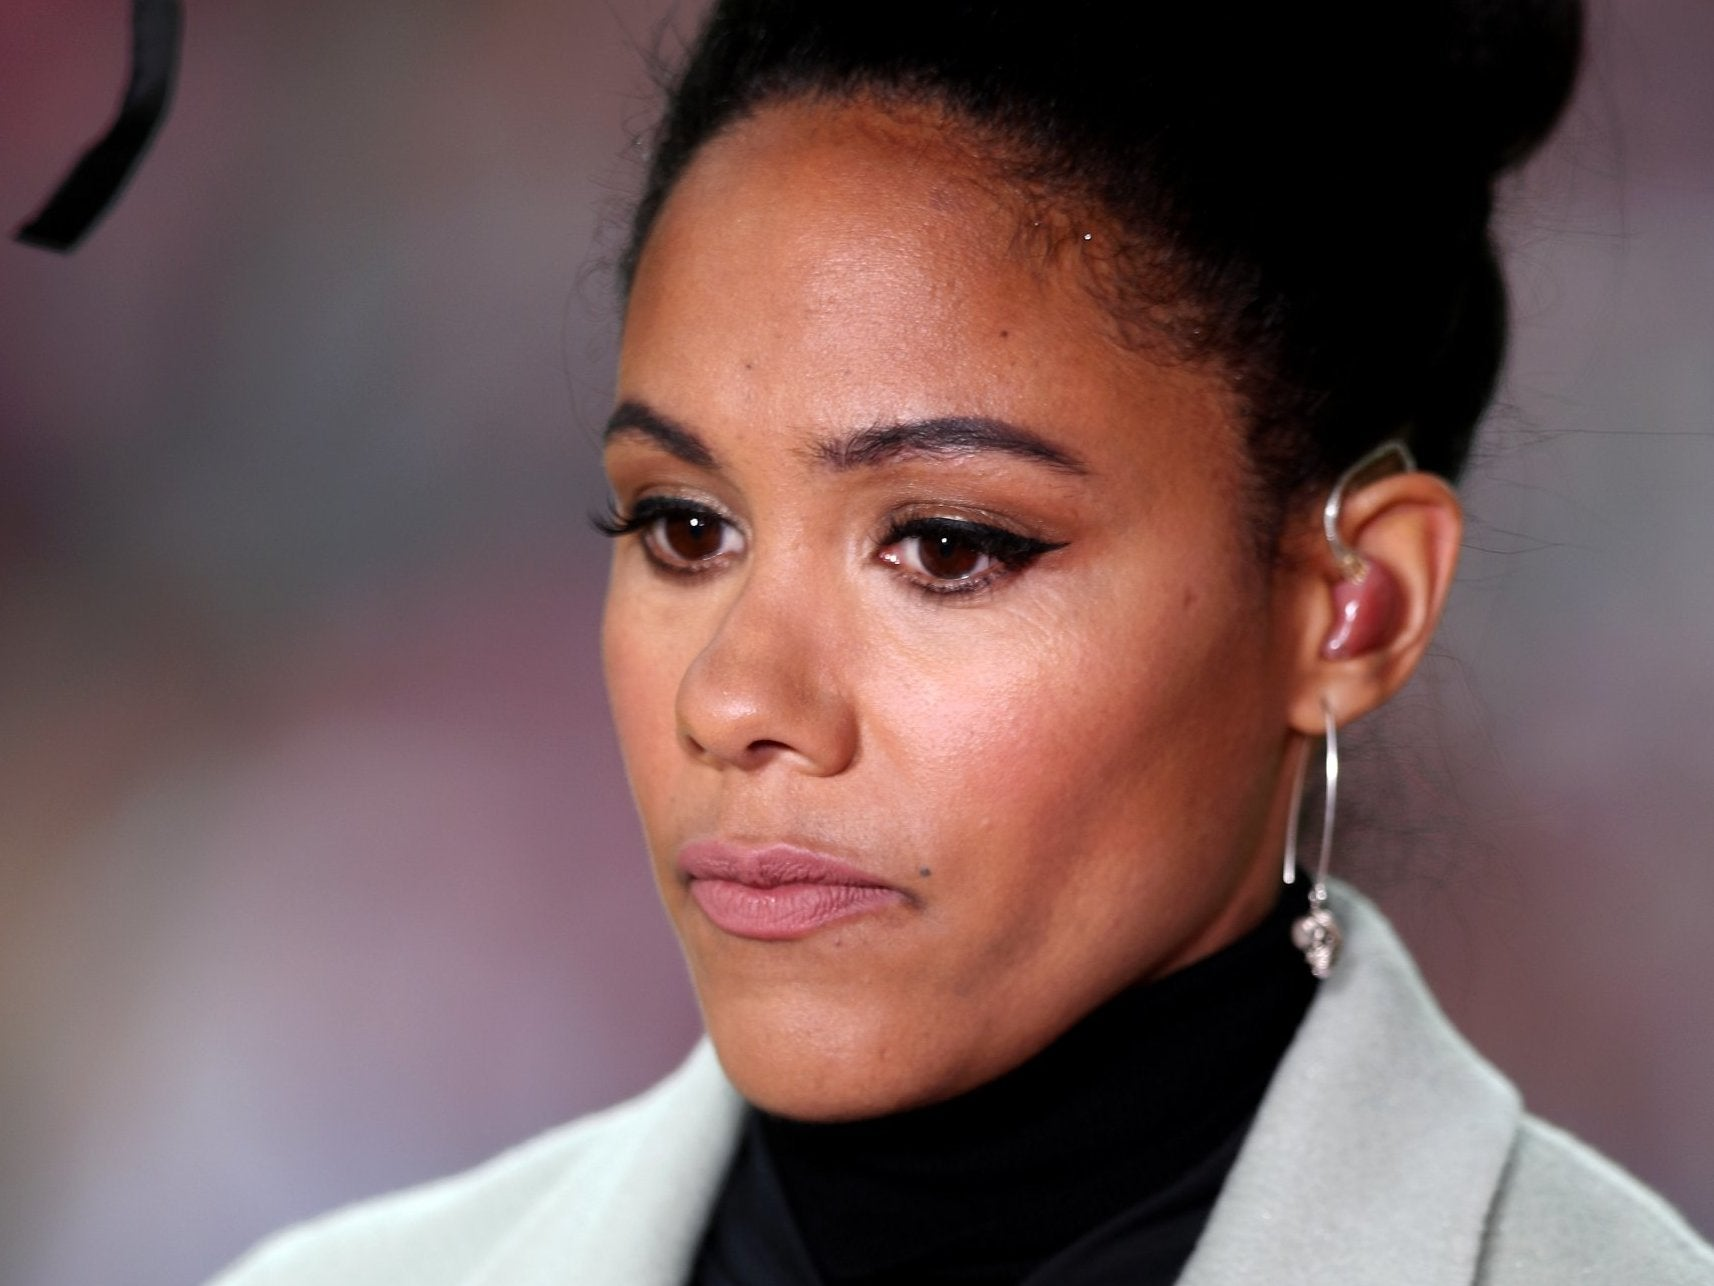 Alex Scott vows to continue TV punditry despite sexist abuse on social media 'every single day'